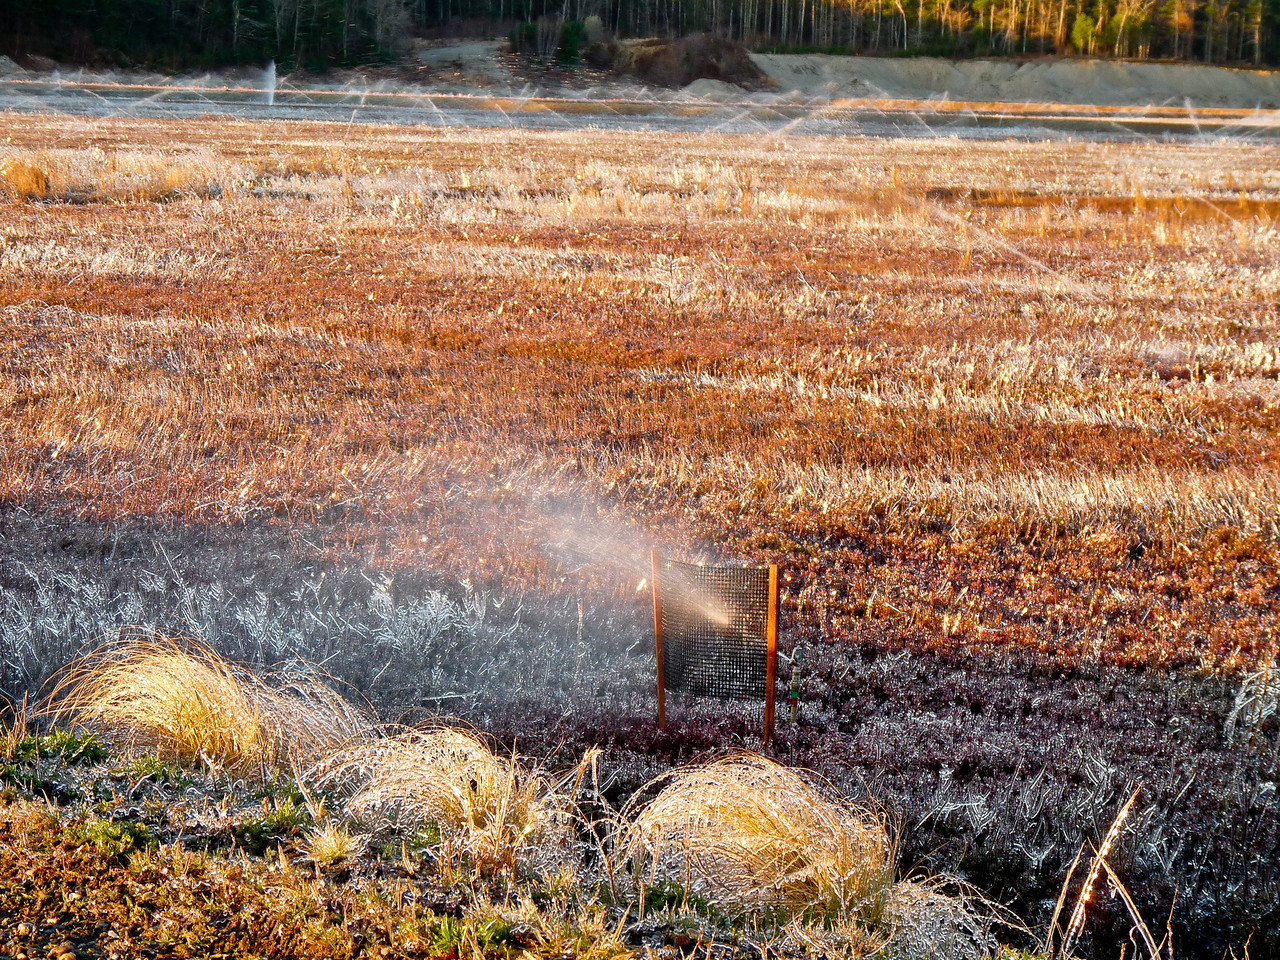 "Unimpressive, to say the least? This is the shaded ""canvas"" for the cranberry bog droplet shots. The light changed a lot in a half hour. Those clumps of grass in the foreground are all iced over, as is everything else in the scene. It was tricky lining up the shots as I really had to keep my eye on the circulating overheads. They had a way of sneaking up on me. This was shot when I first got there and the bog edge was still in shade. I went off and shot the old peach barn for a while and when I was leaving, I thought I'd take a look at it again. The sun, droplets and background were all able to be lined up nicely. I just had to time it properly and lay on the cold, wet ground to do it! The things we do to get the shot!!<br /> Back to the dailies. <a href=""http://hocusfocusd70.smugmug.com/Other/Dailies/7669174_PkBp2Z#!i=1779177326&k=knLPZm6"">http://hocusfocusd70.smugmug.com/Other/Dailies/7669174_PkBp2Z#!i=1779177326&k=knLPZm6</a>"